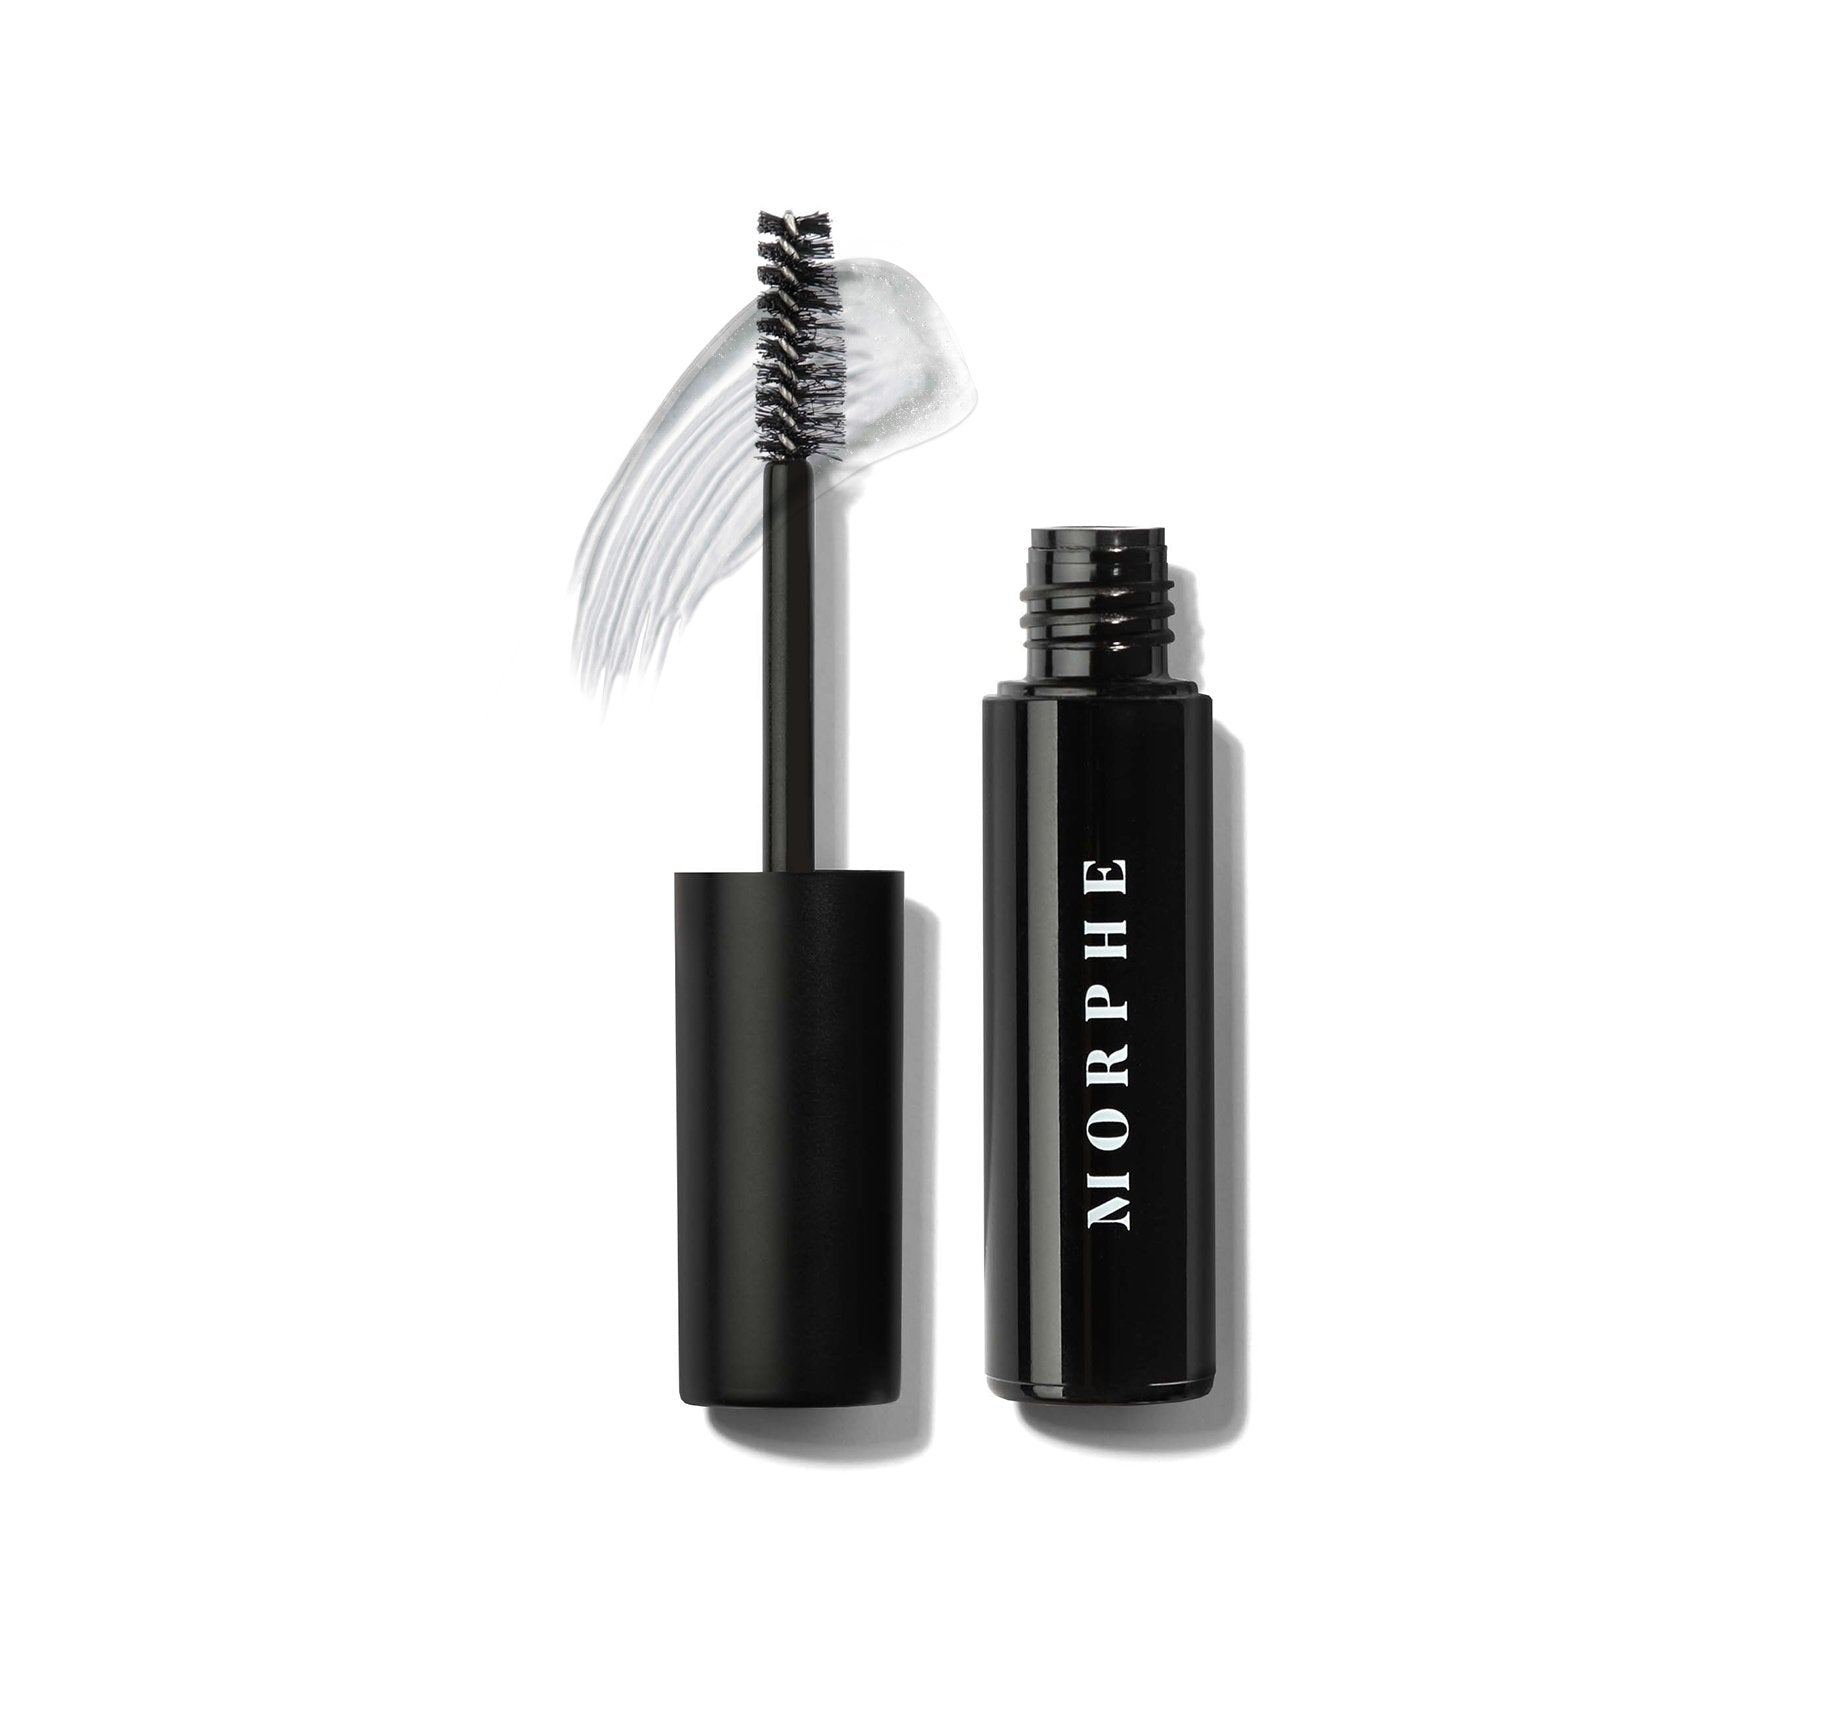 Morphe - BROW SETTING GEL - TRANSLUCENT